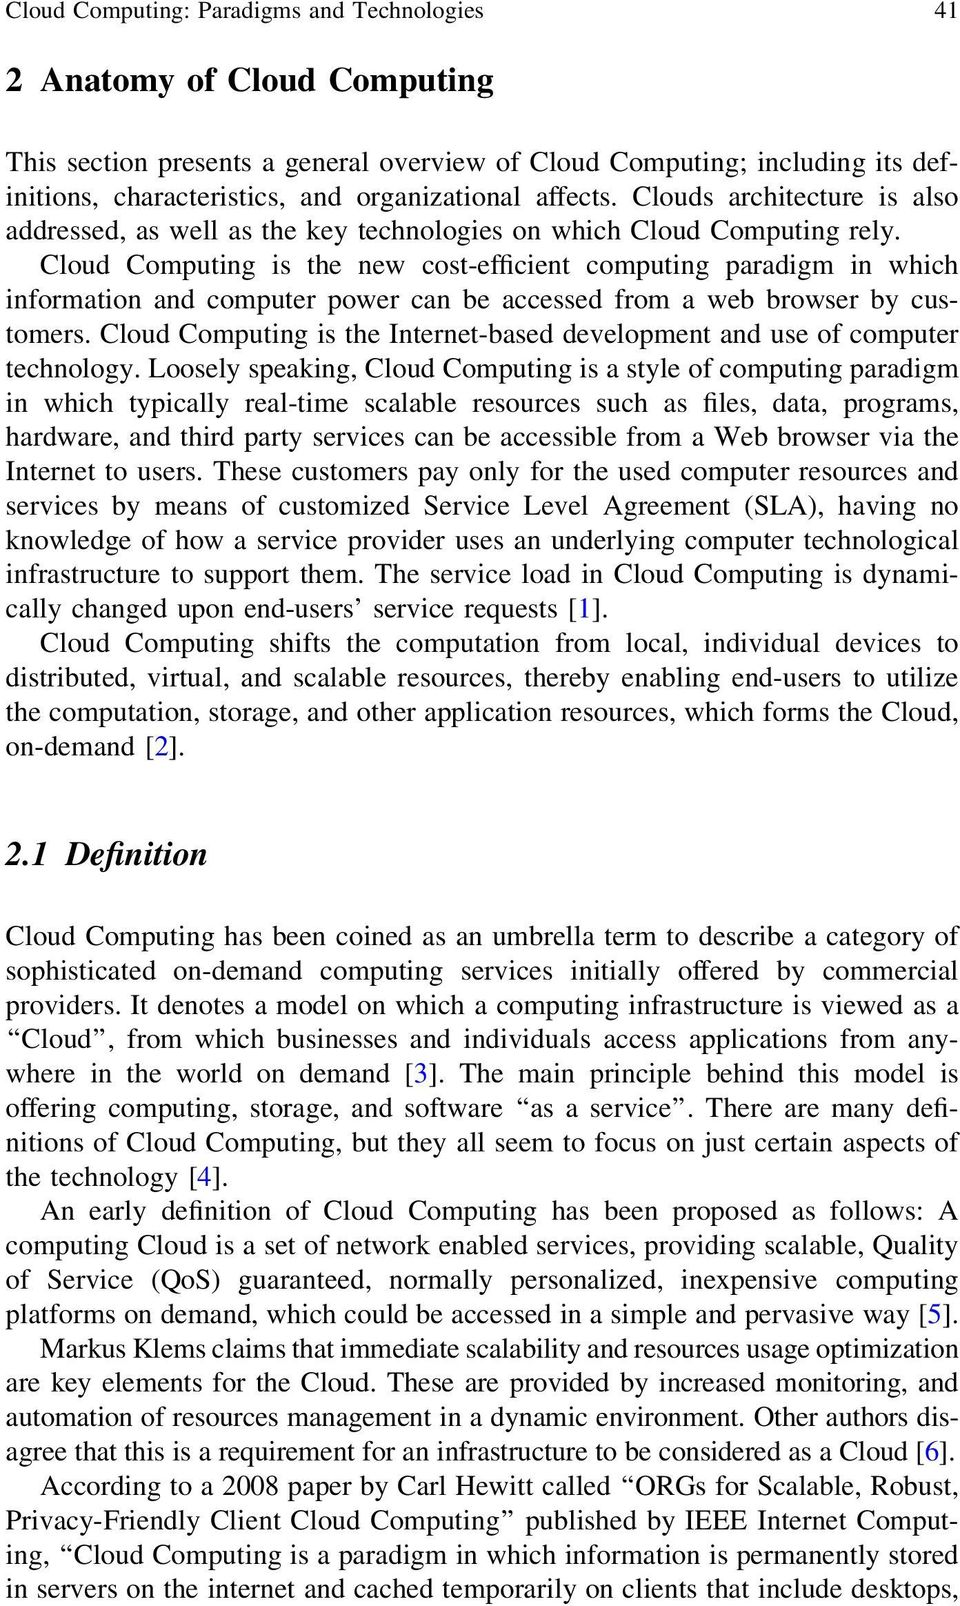 Cloud Computing is the new cost-efficient computing paradigm in which information and computer power can be accessed from a web browser by customers.